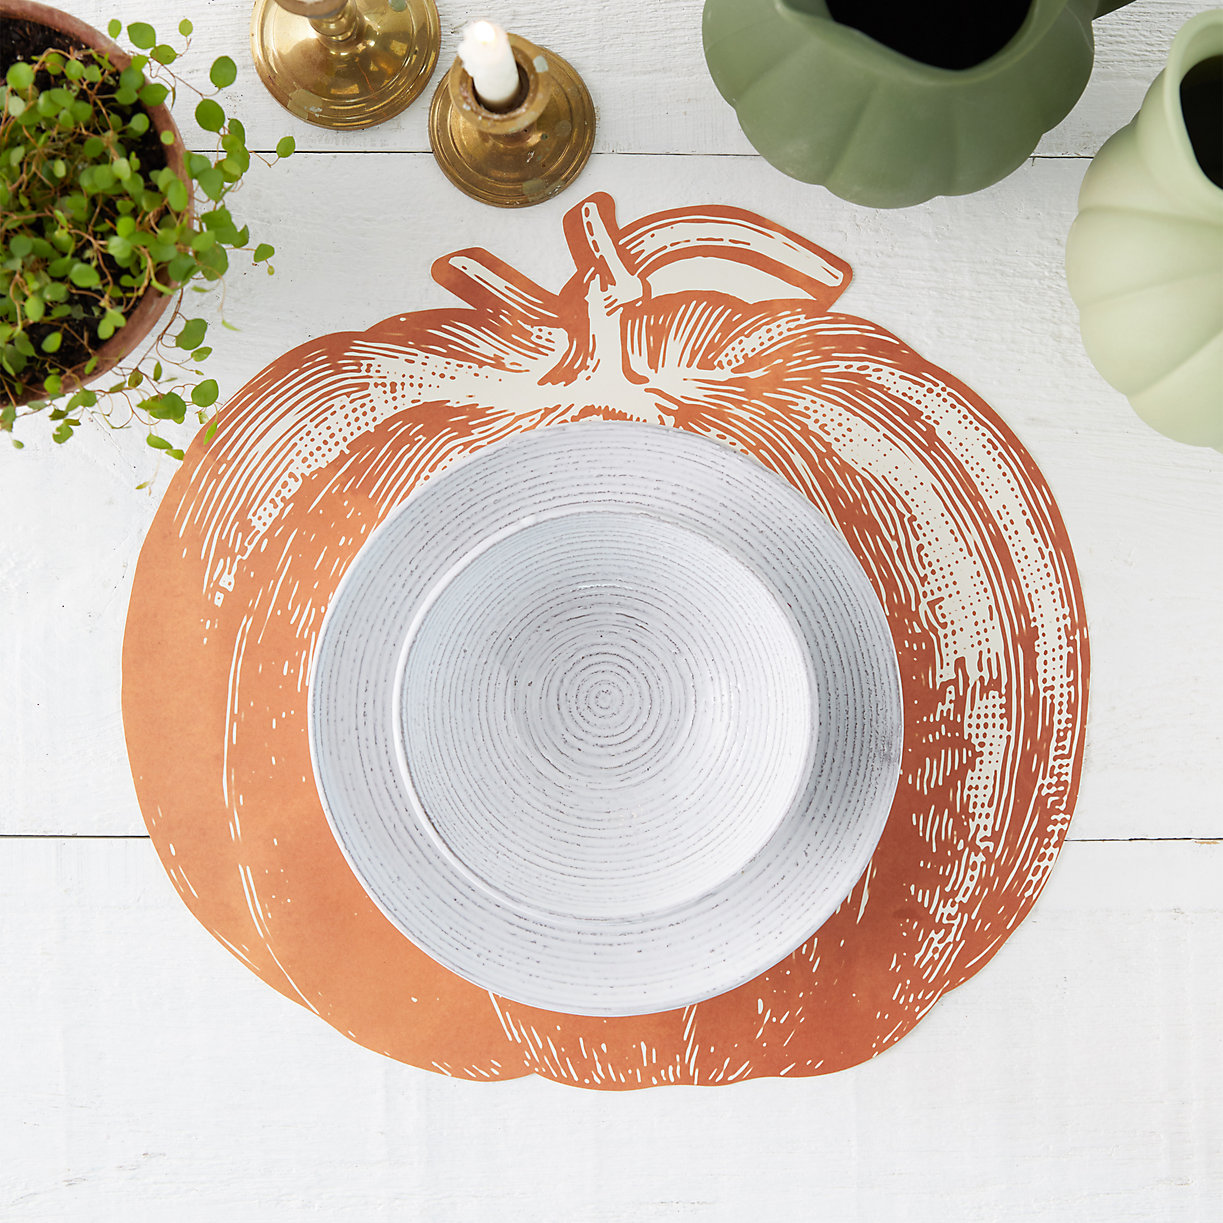 Thanksgiving Table with pumpkin placemat